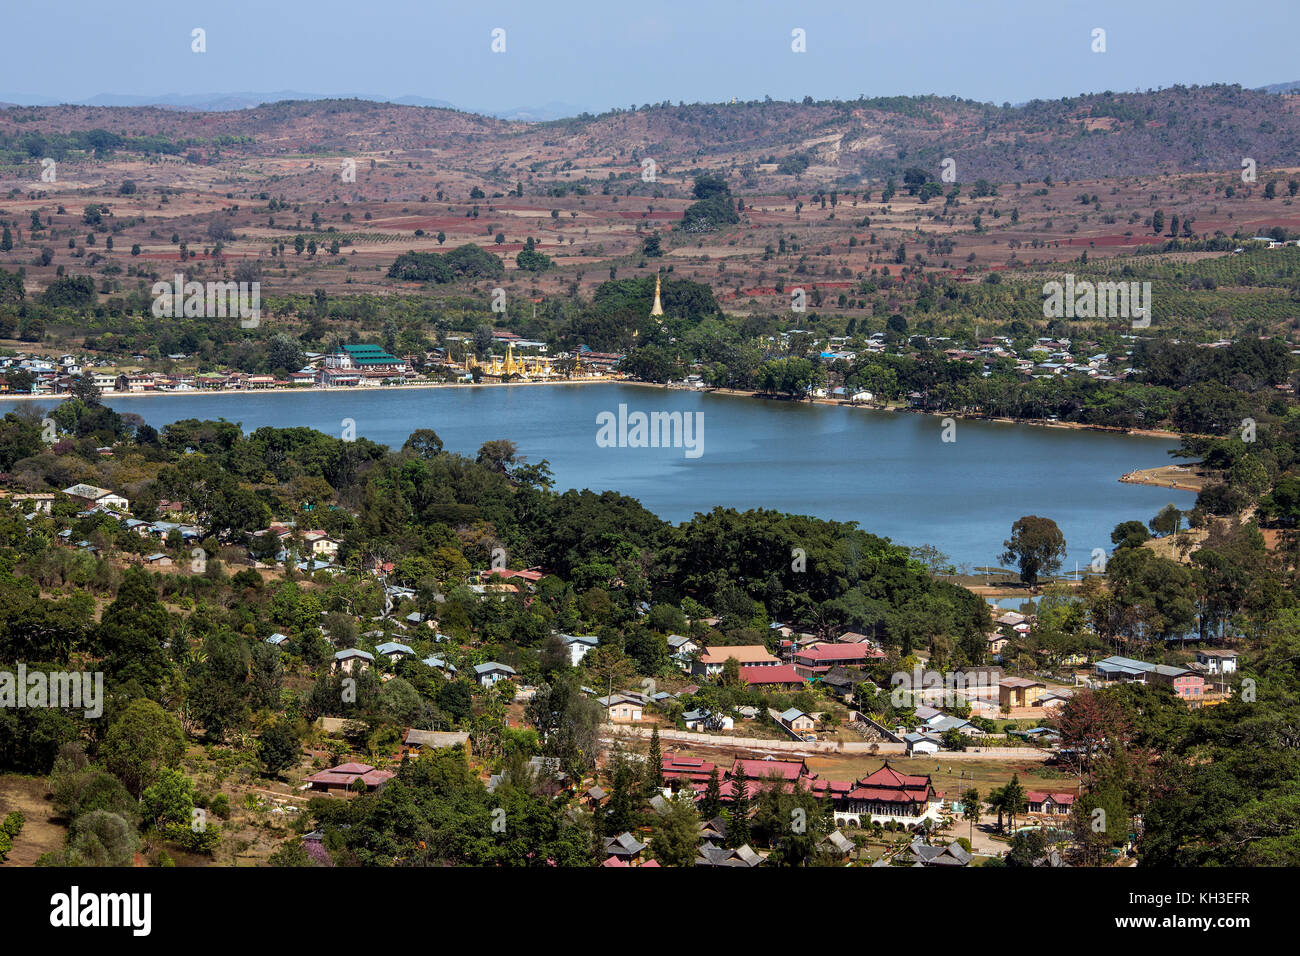 Small township of Mwedaw near Pindaya in the Taunggyi District of Shan State in central Myanmar (Burma). Stock Photo